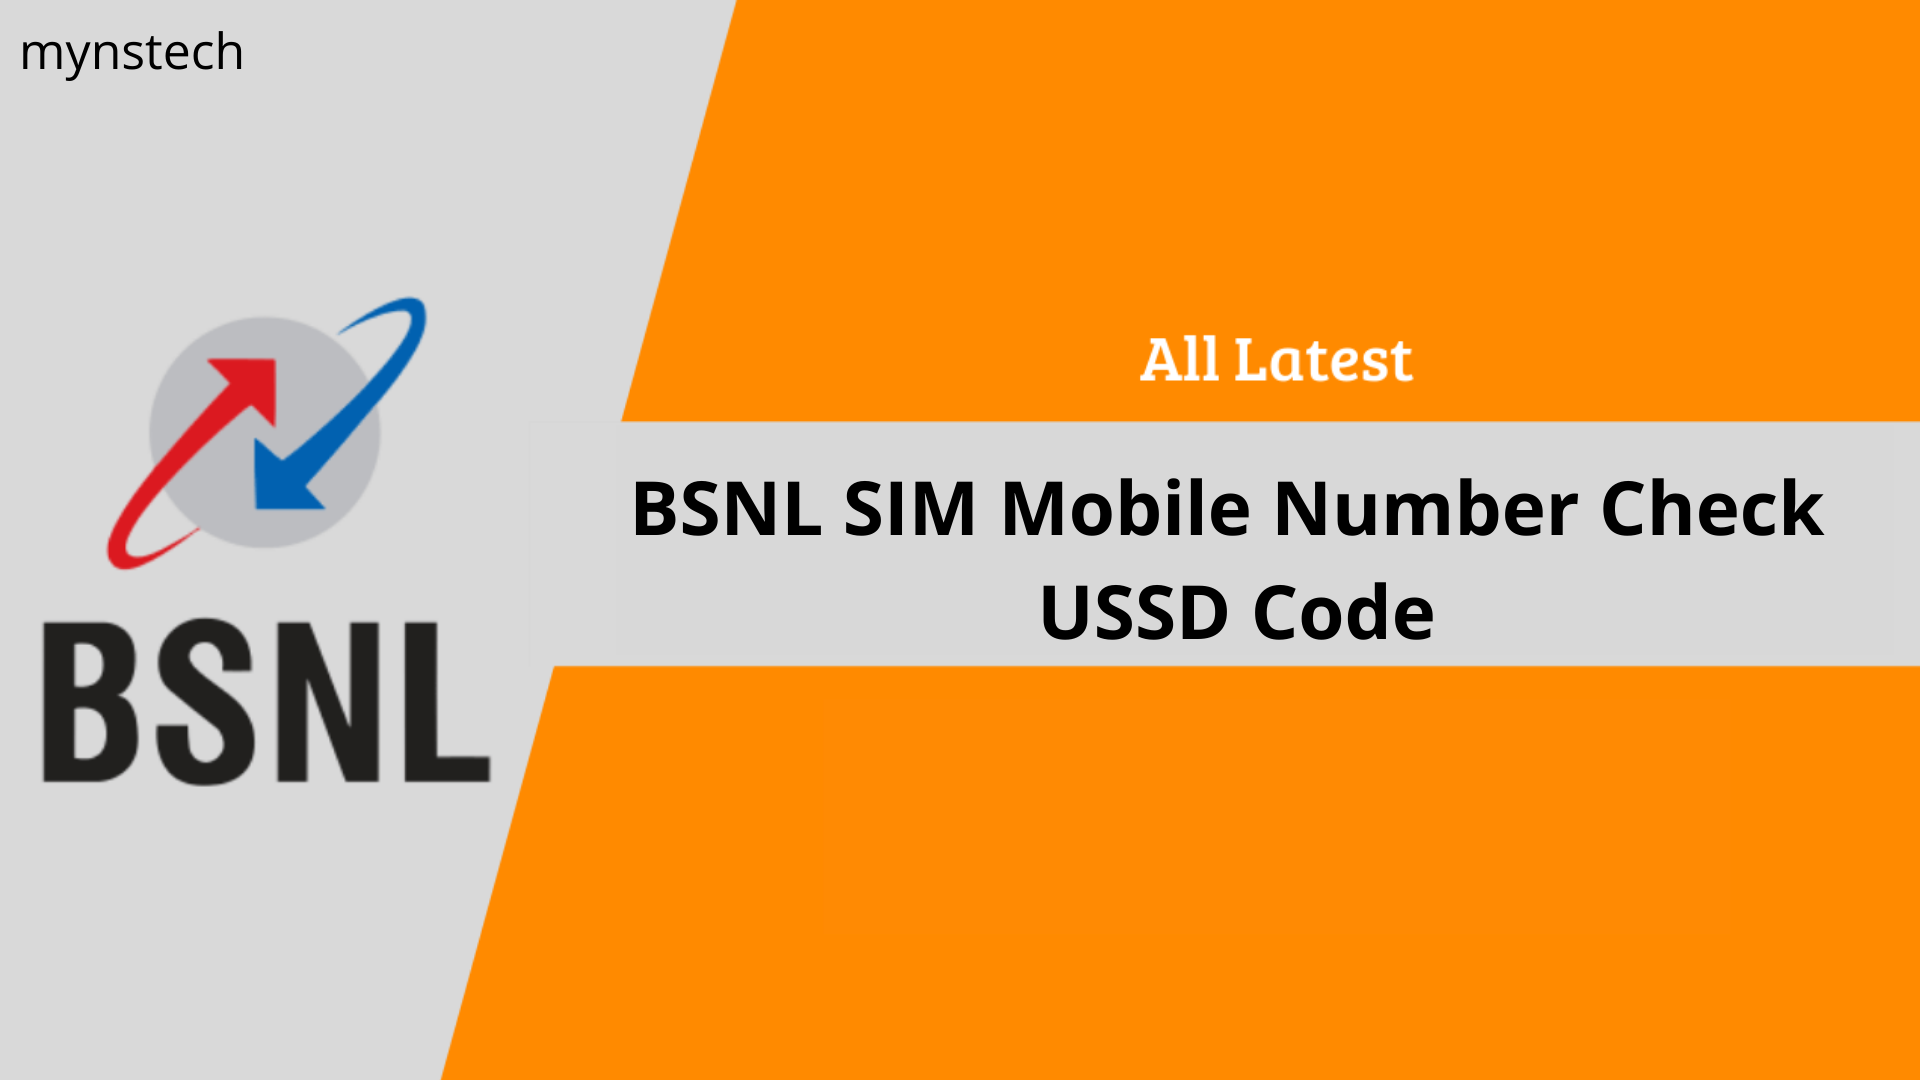 BSNL SIM Mobile Number Check USSD Code